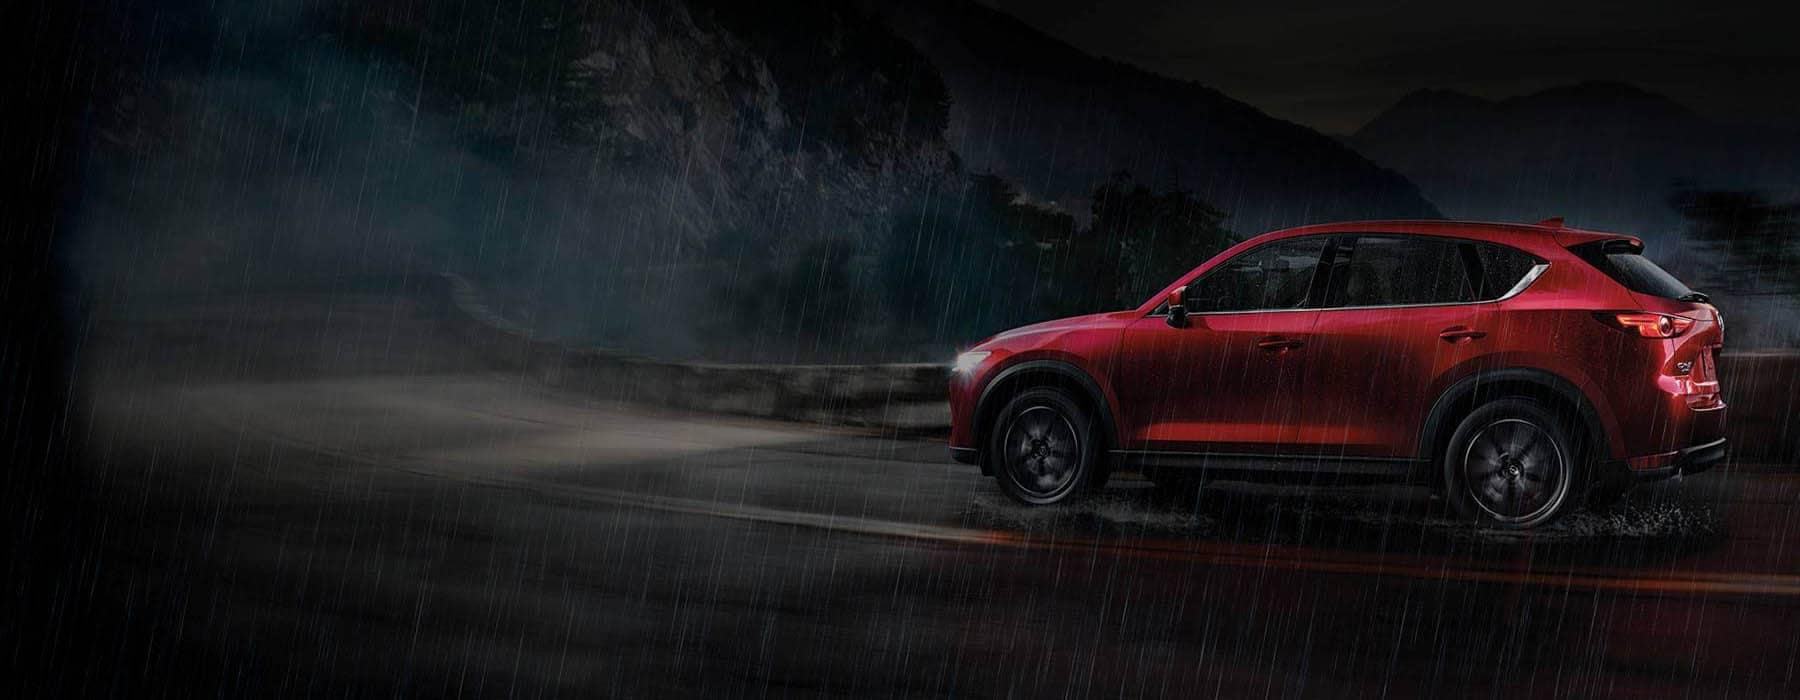 Mazda CX-5 Driving in the Rain